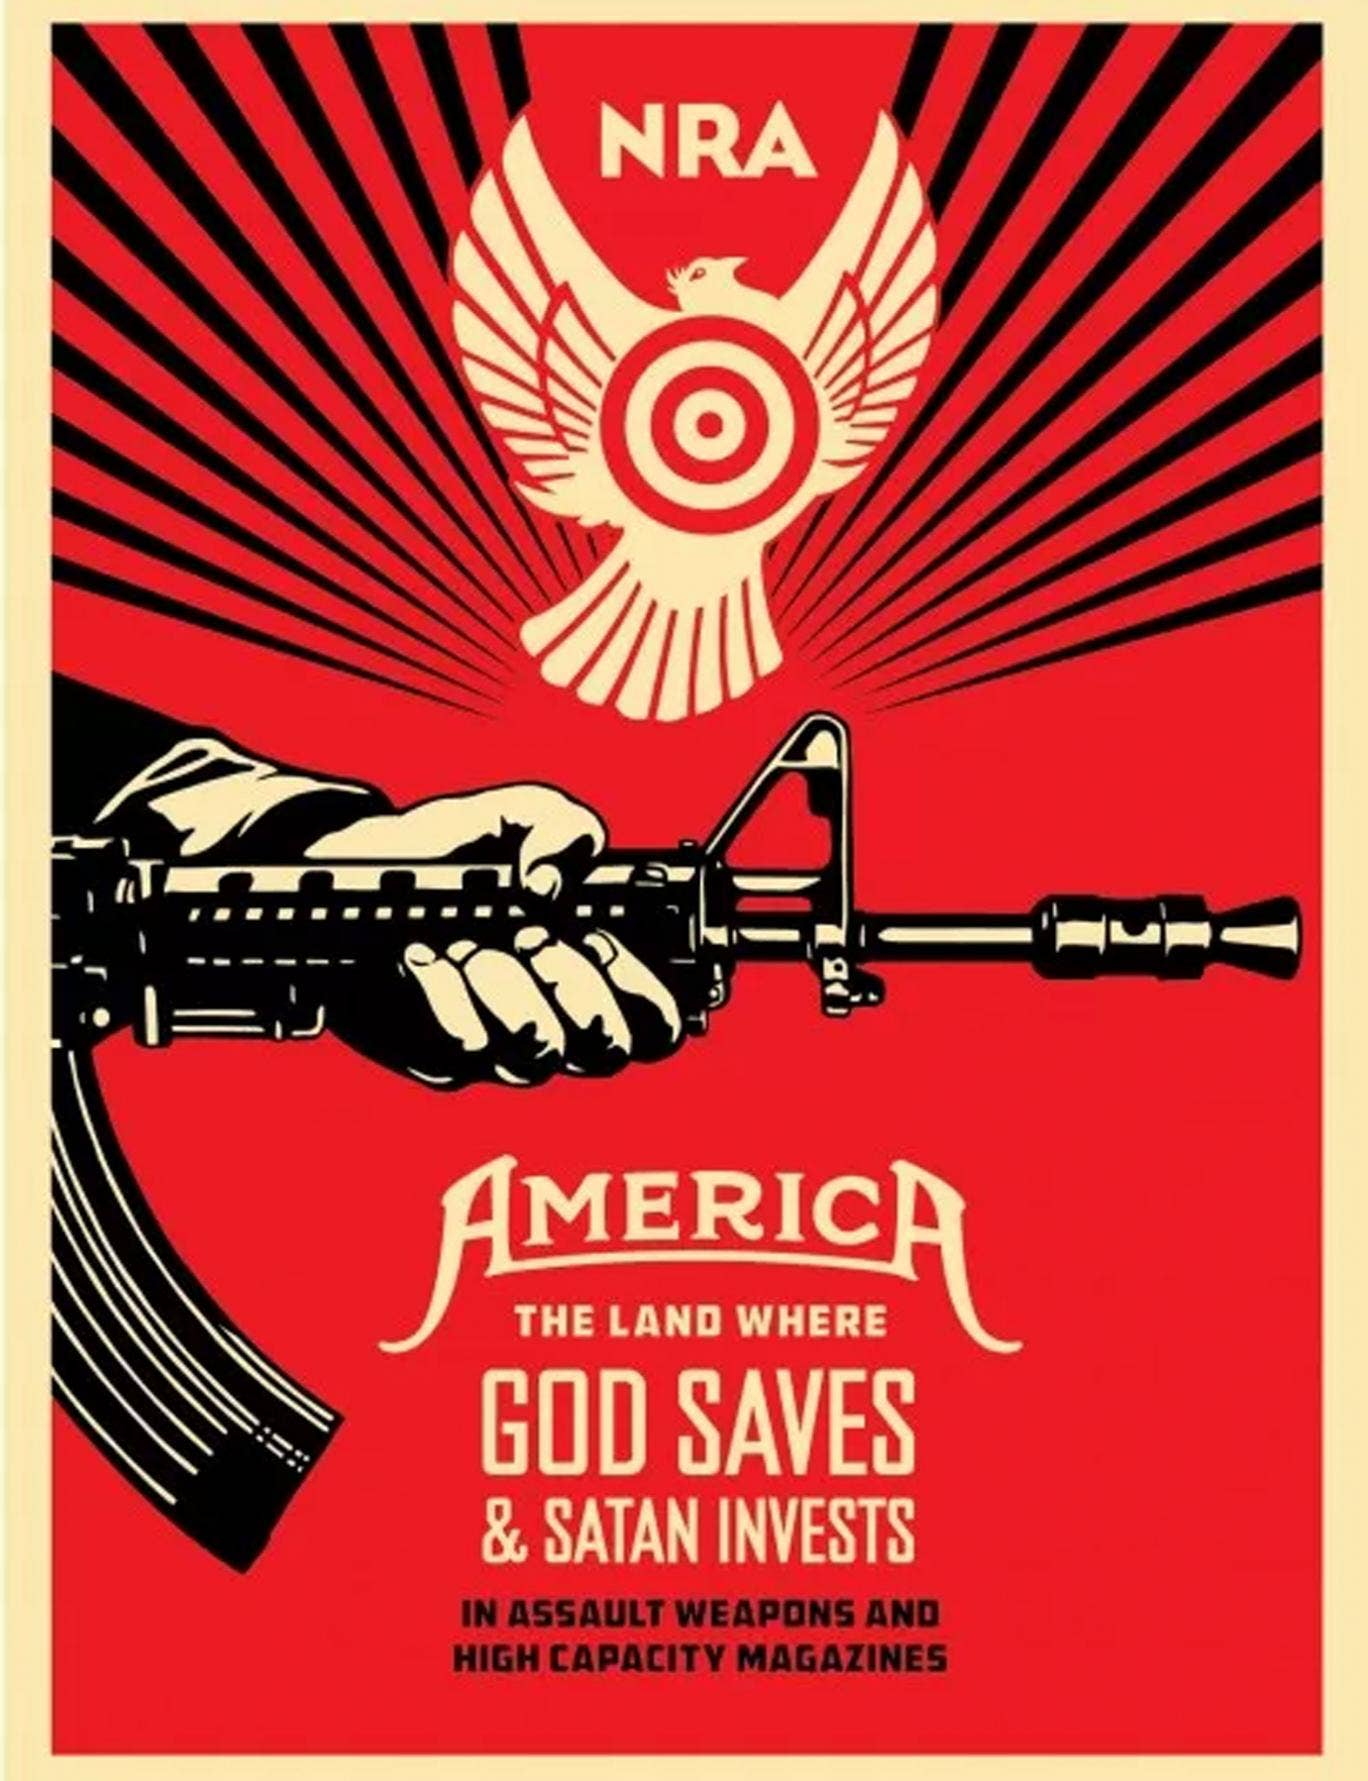 The new artwork by Shepard Fairey, attacking the anti-gun control lobby in America